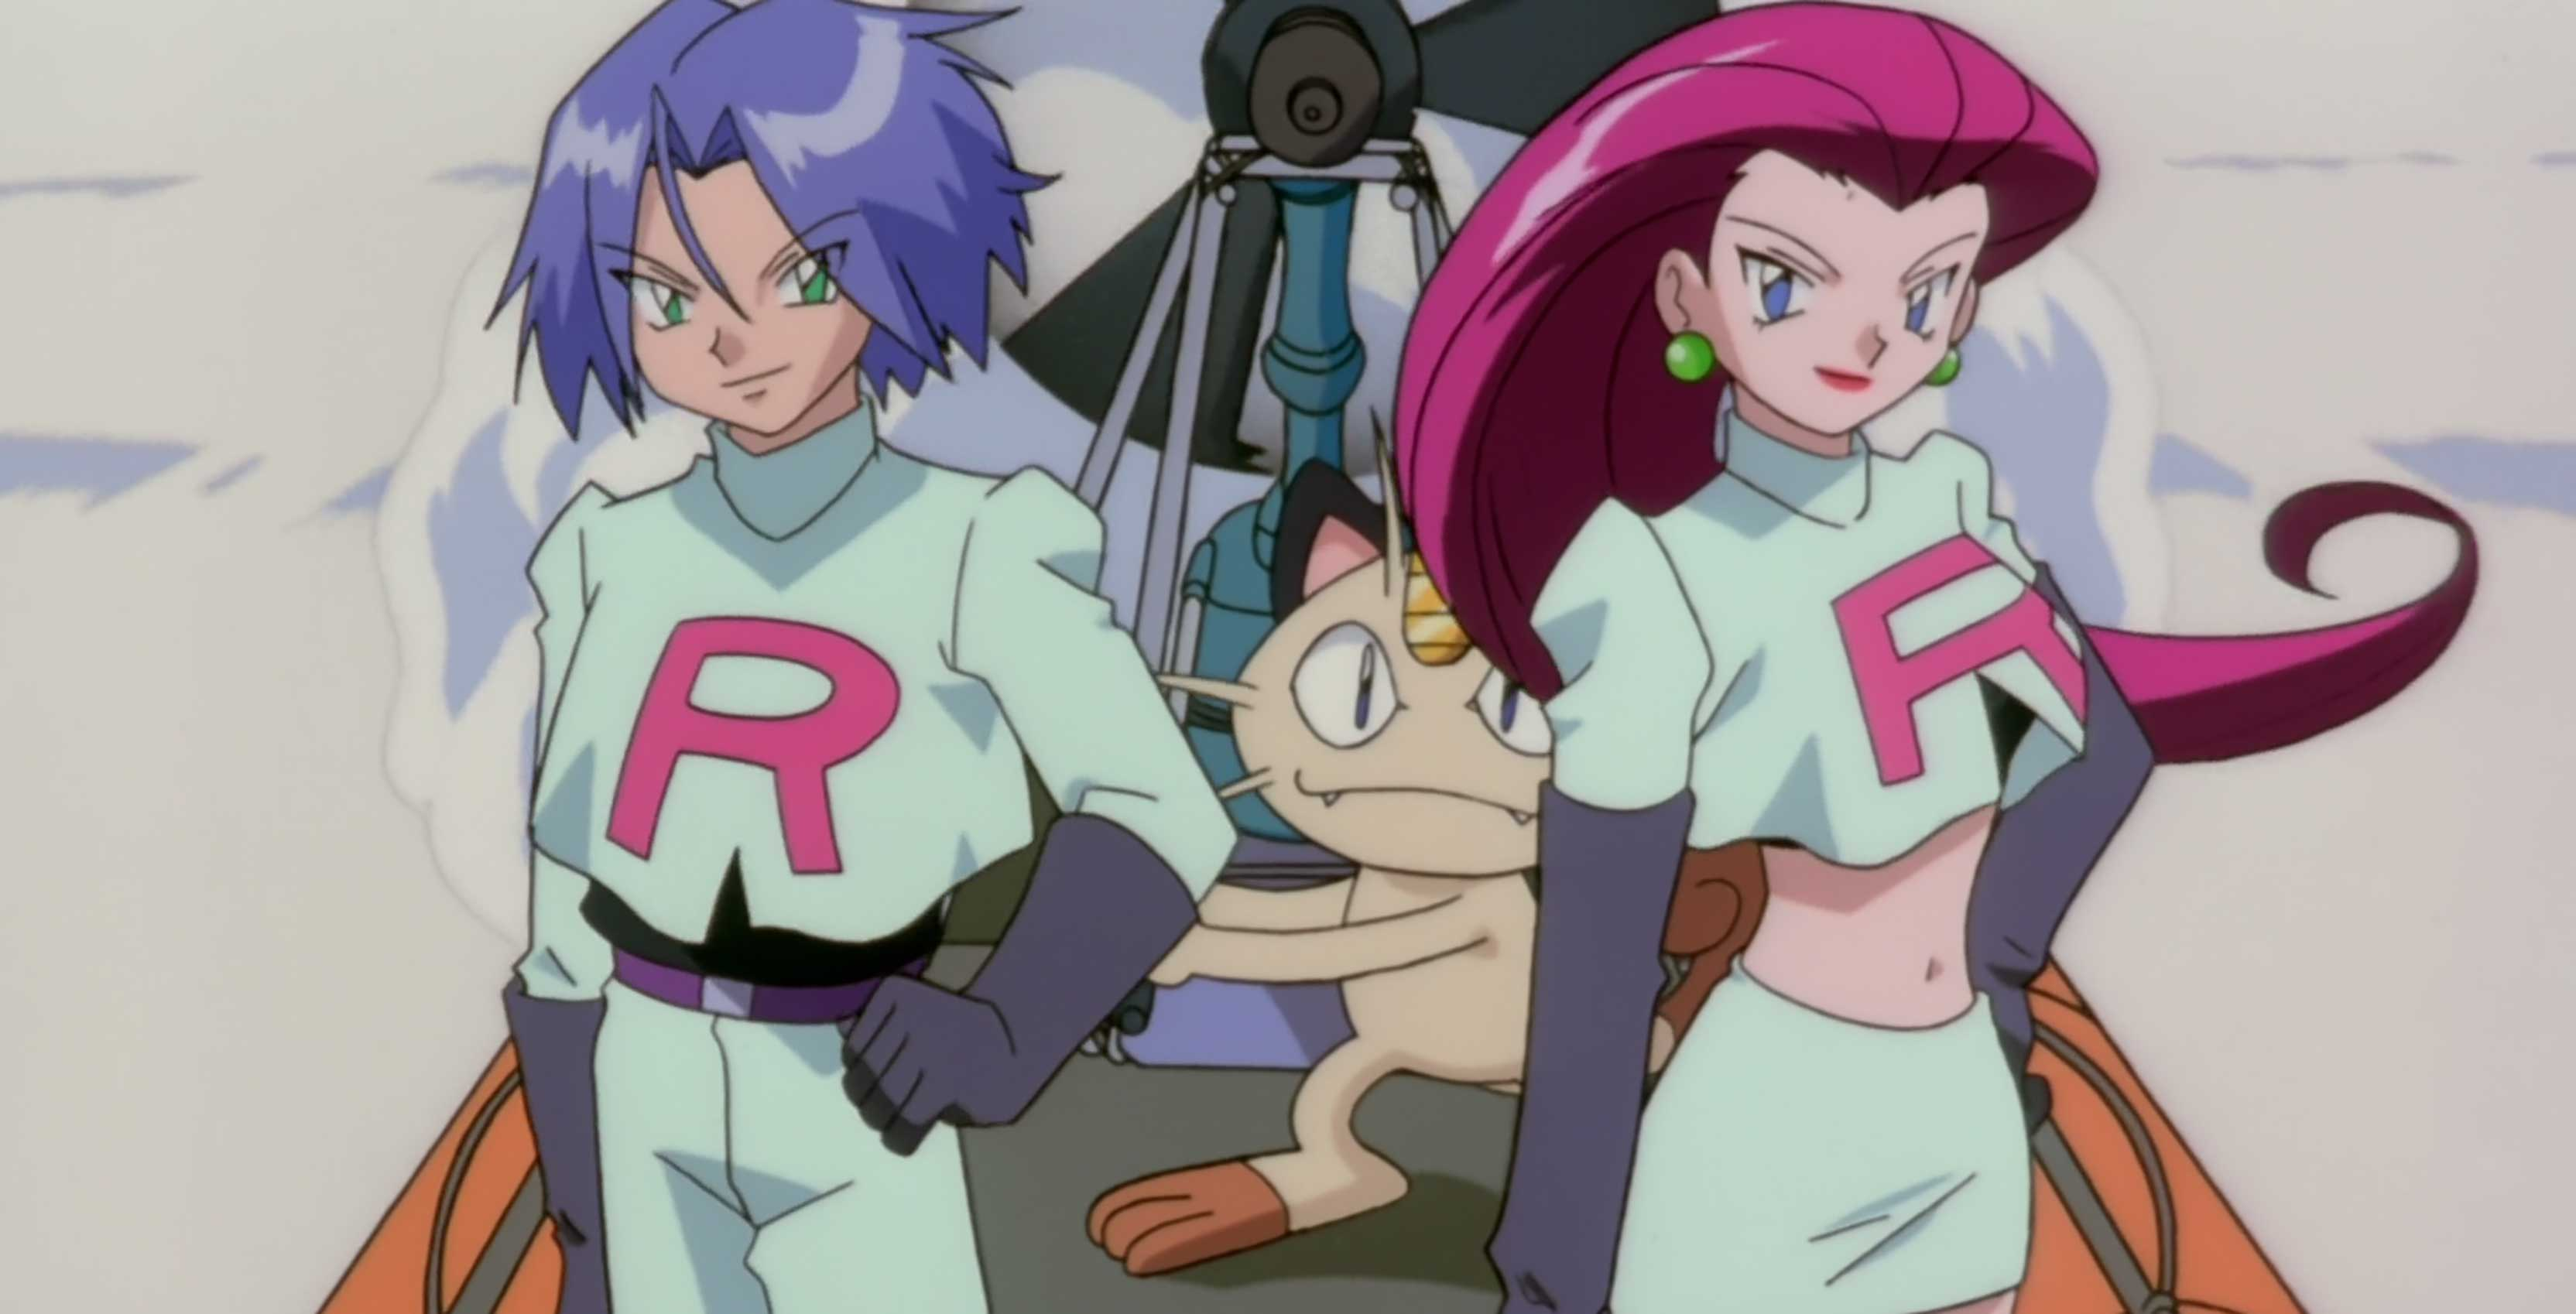 Team Rocket and Shadow Pokémon have landed in Pokémon Go